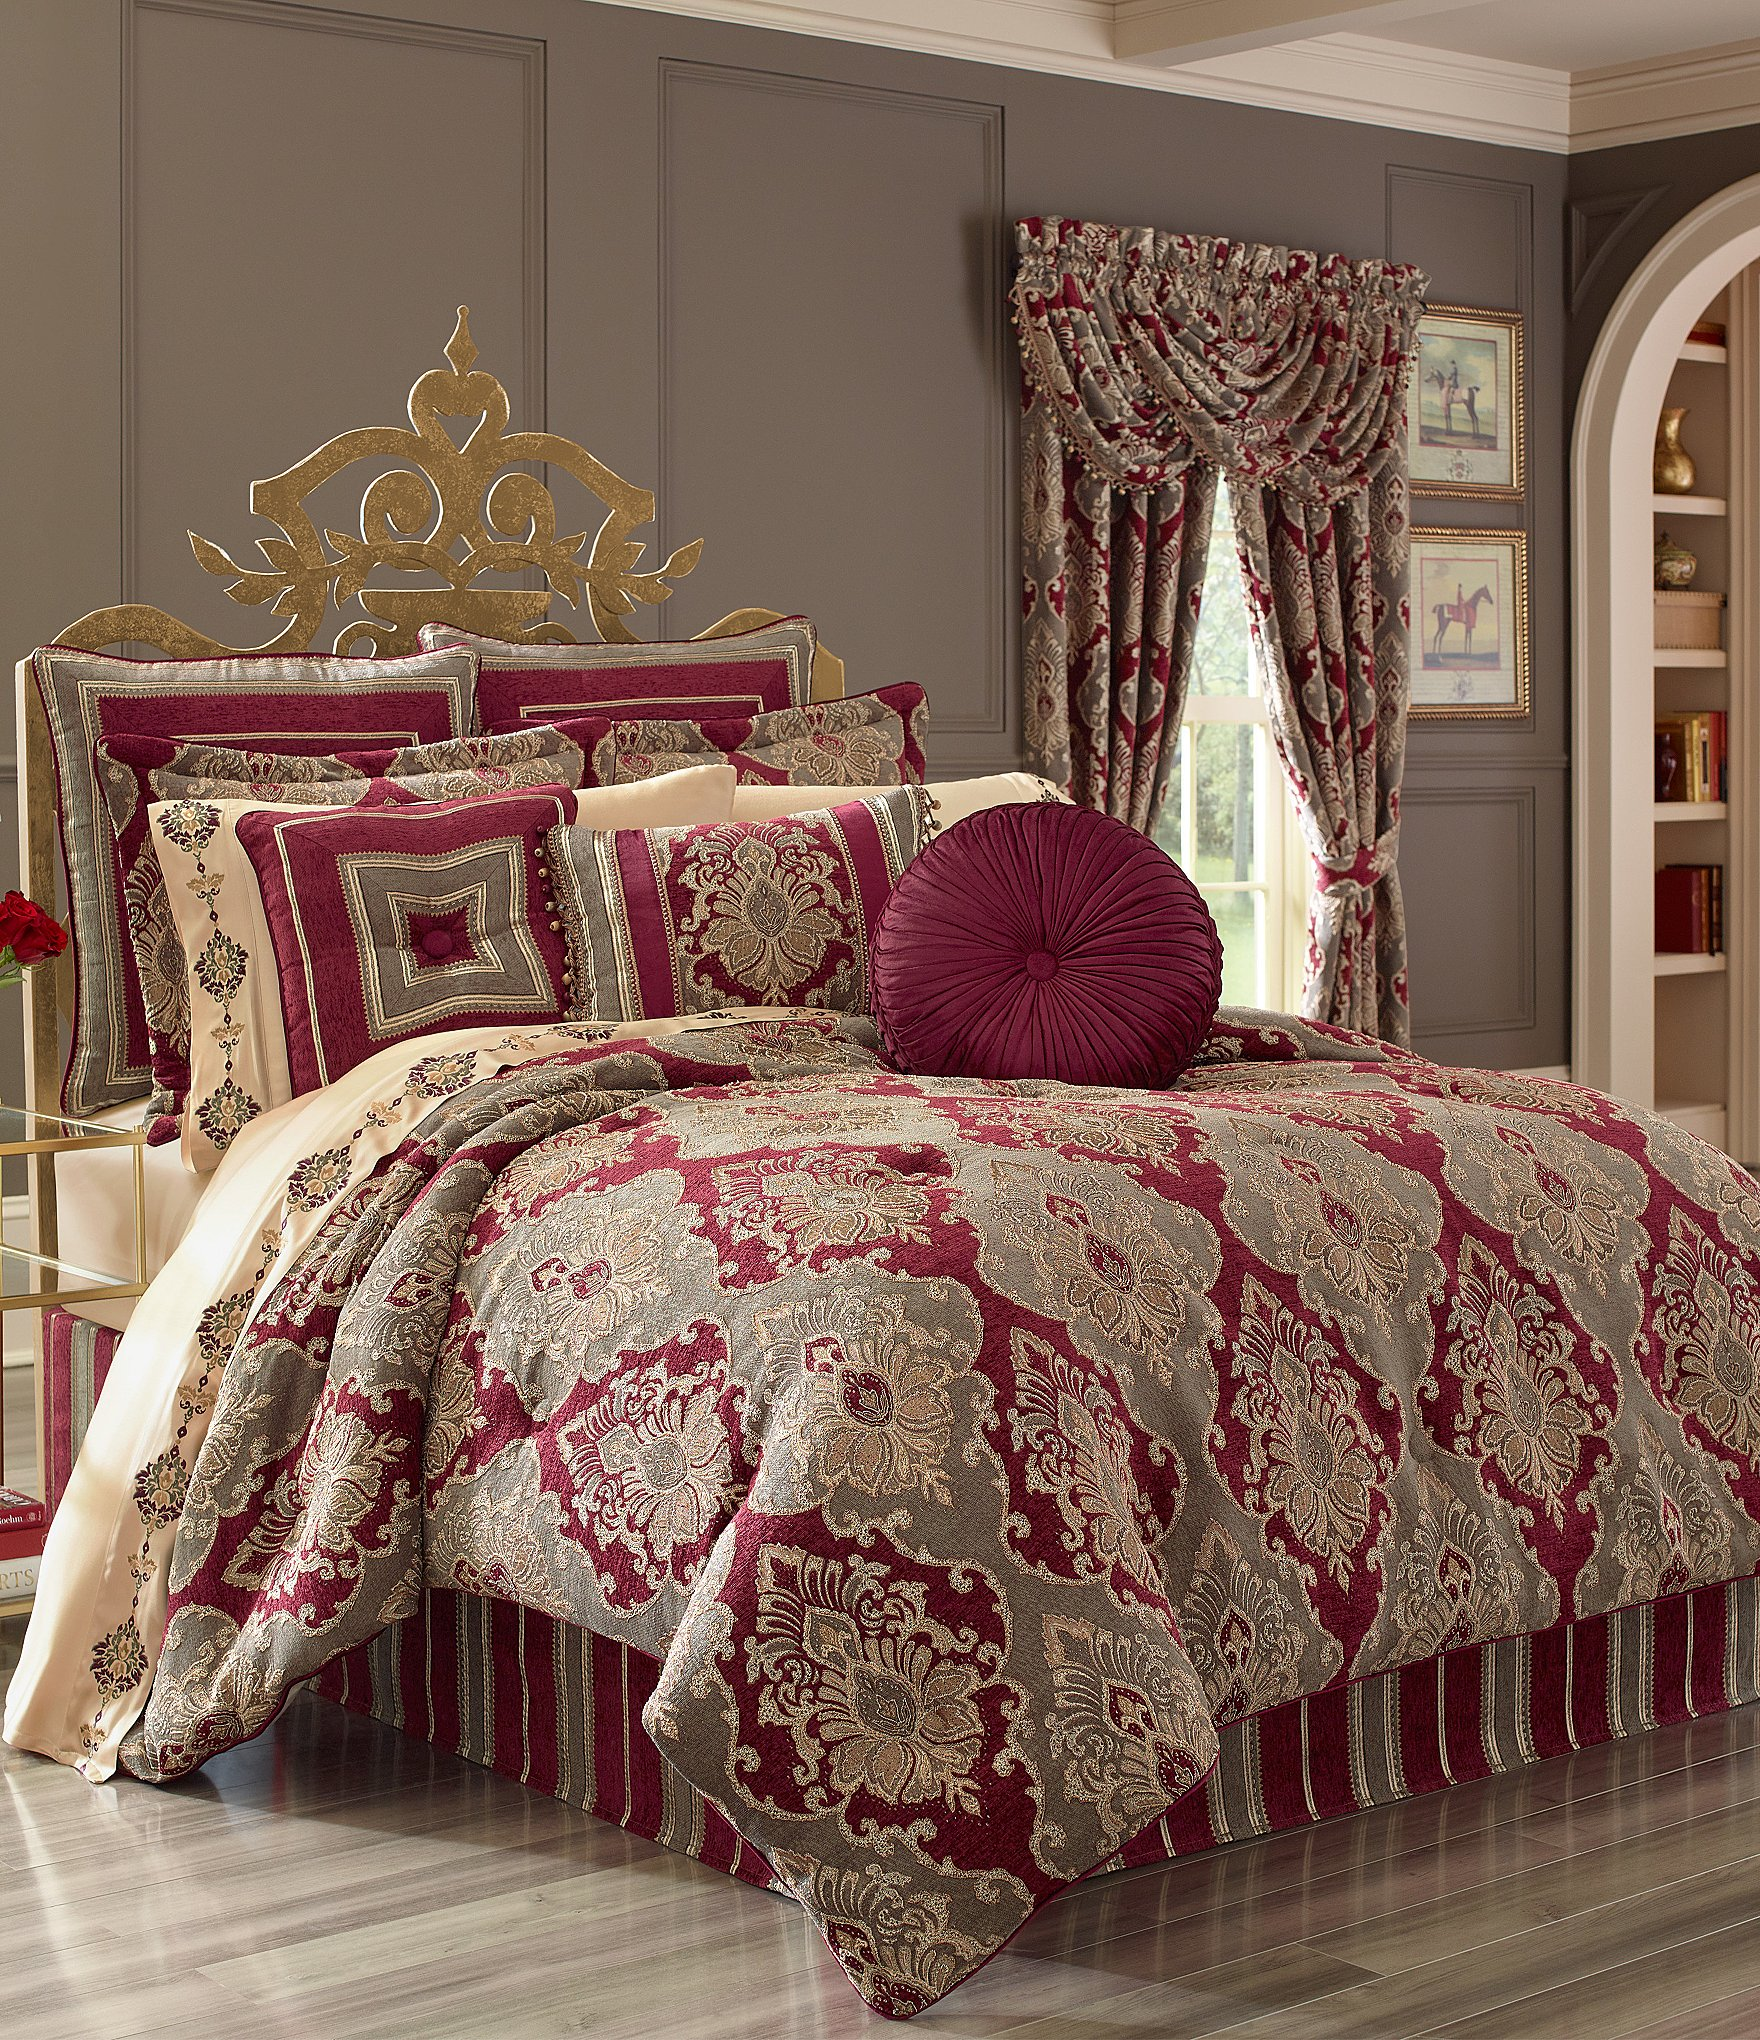 Bedding Bedding Collections Dillards - Blue and brown damask comforter